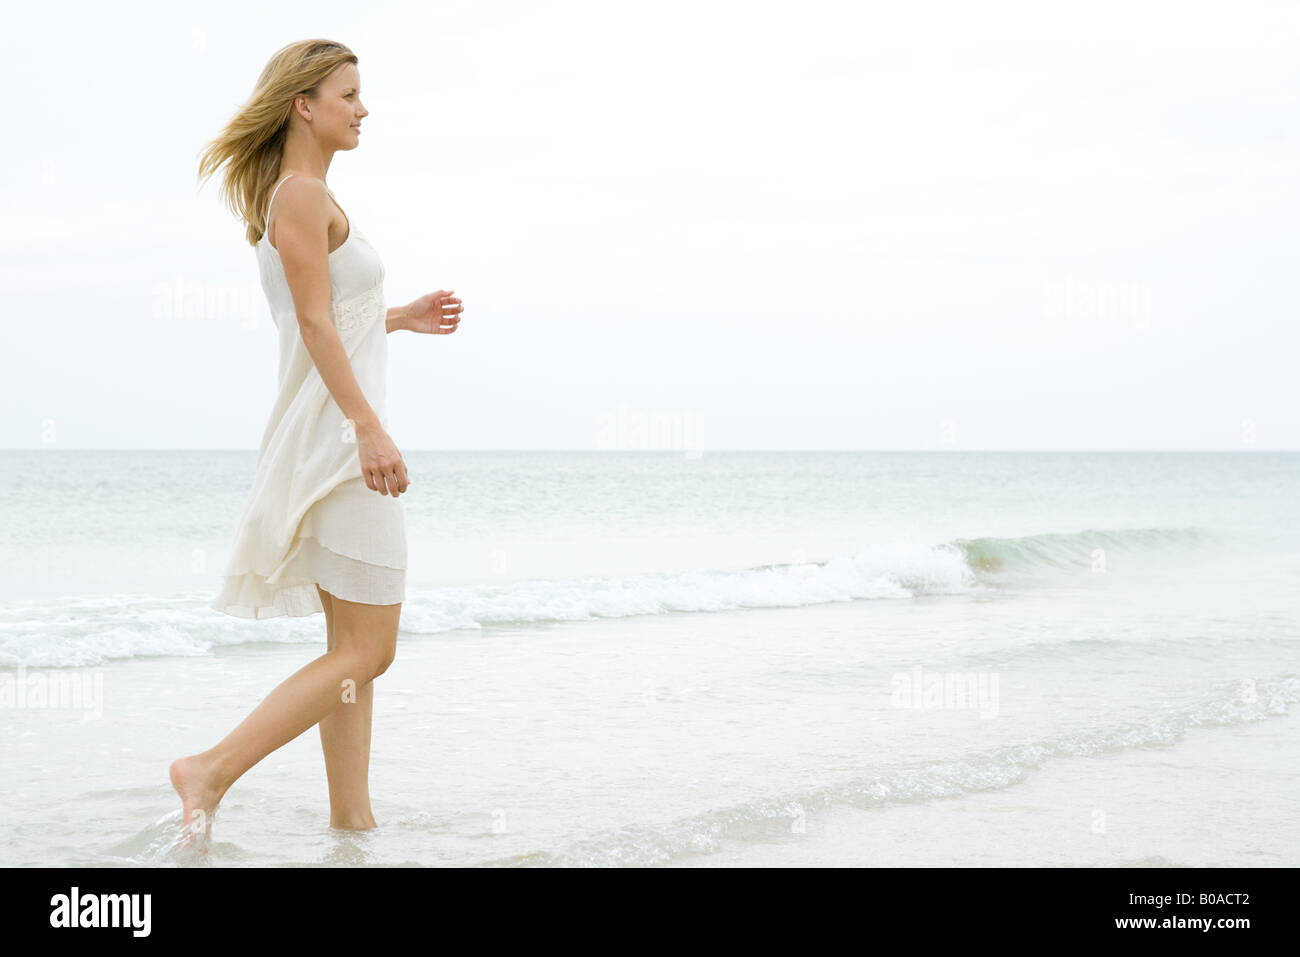 Woman walking on a beach royalty - Woman Walking At The Beach Side View